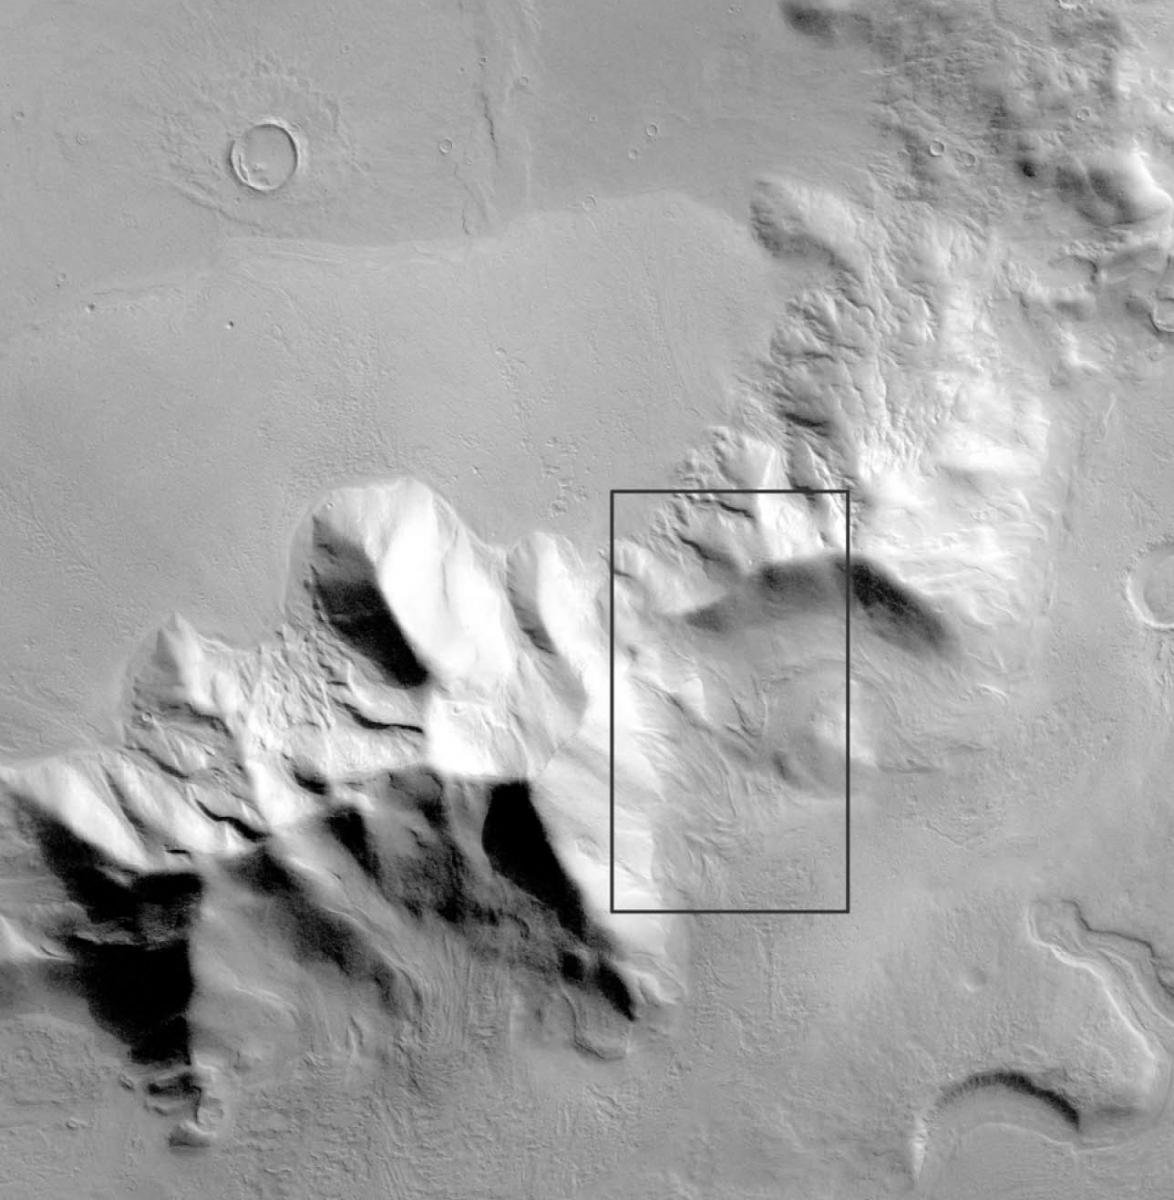 Figure 6b. Context image of debris apron near Reull Vallis